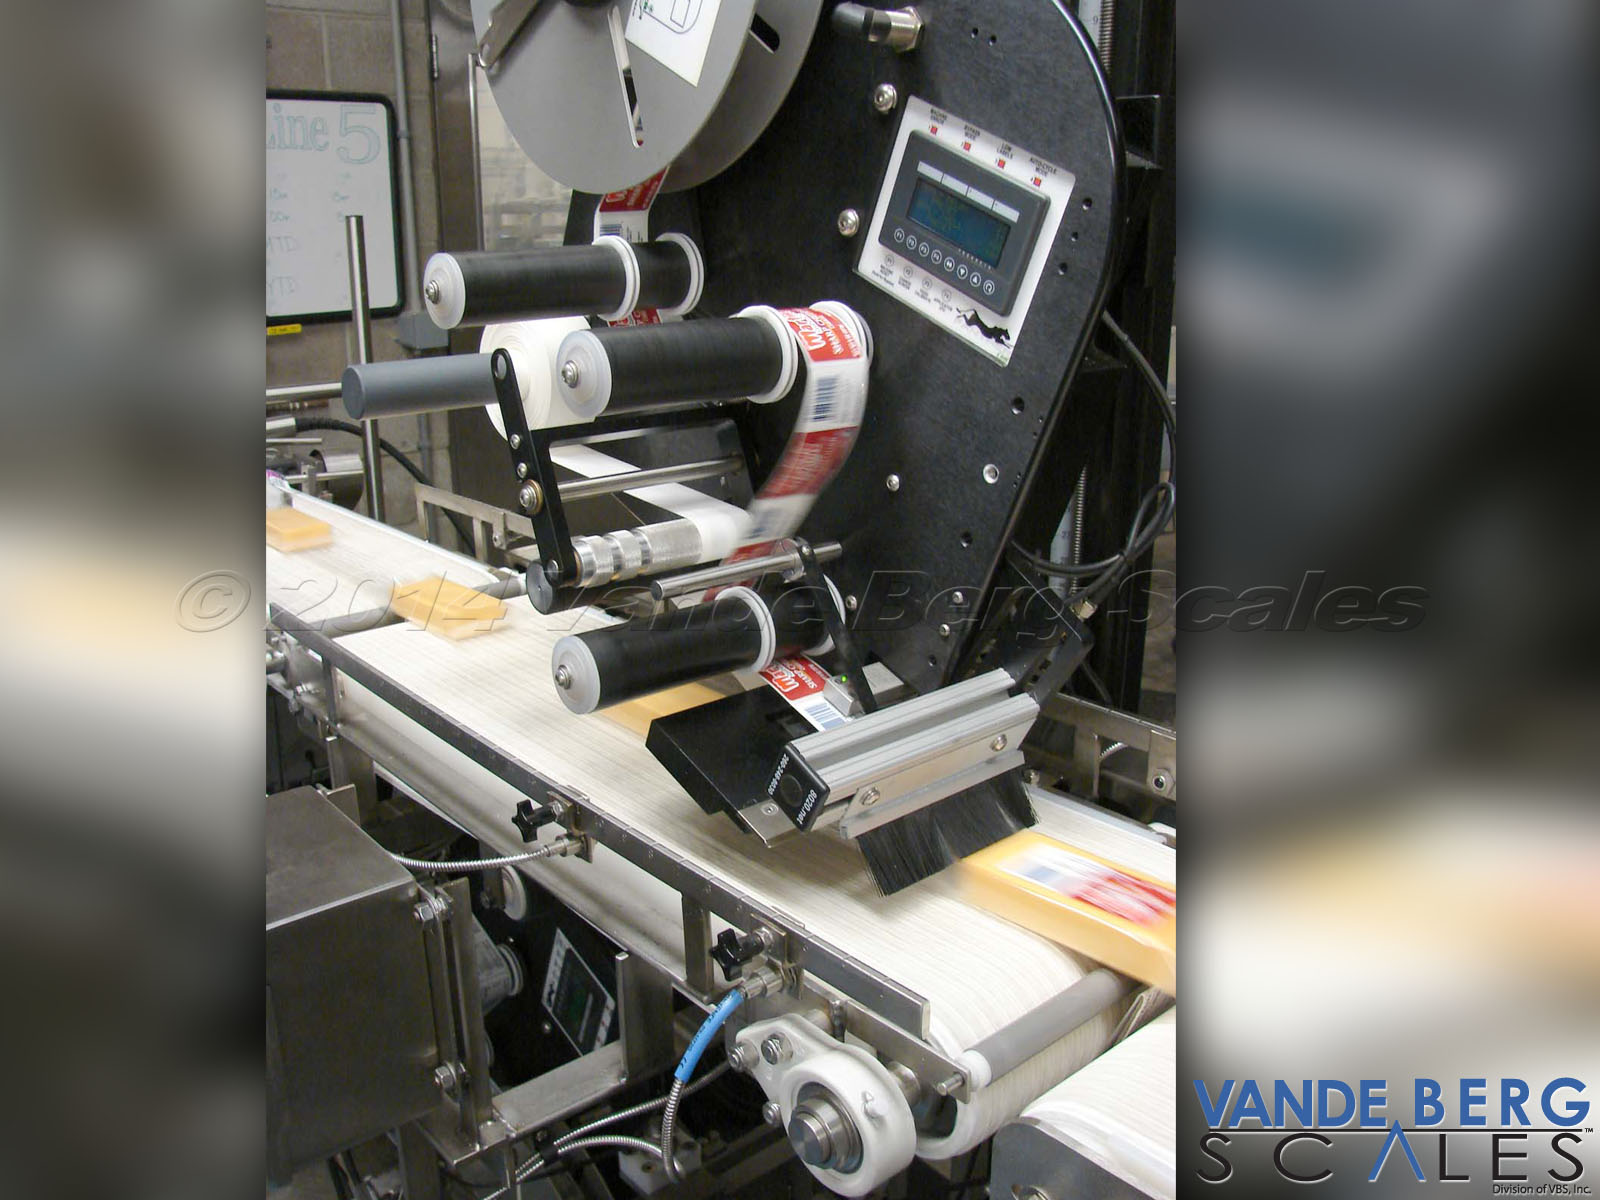 Top and Bottom Cheese Labeling System - unit applies the label at the same speed as the conveyor belt to ensure a wrinkle-free application